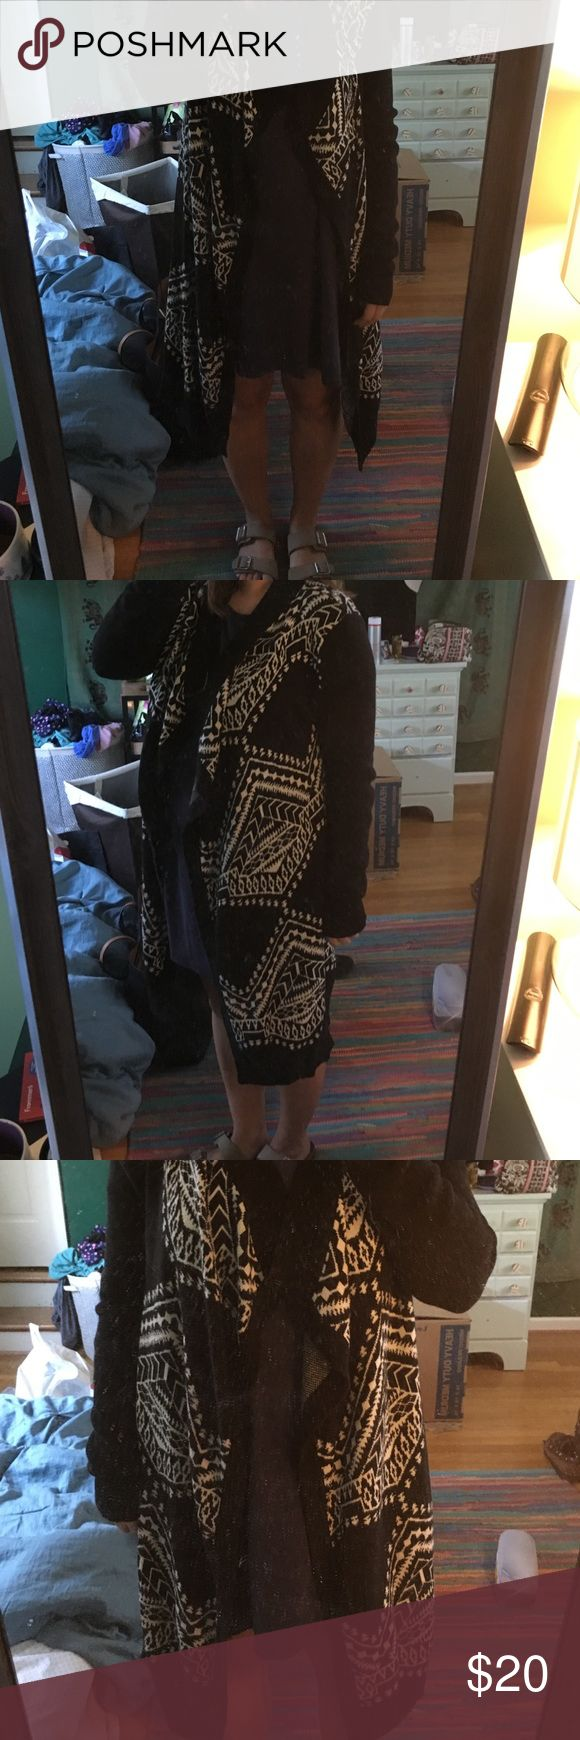 Ecote tribal print cardigan Black and cream colored sweater/cardigan from Urban Outfitters (ecote). Like new, no damage and super cute! I just don't like the way it looks on me. My trash could be your treasure! Urban Outfitters Sweaters Cardigans